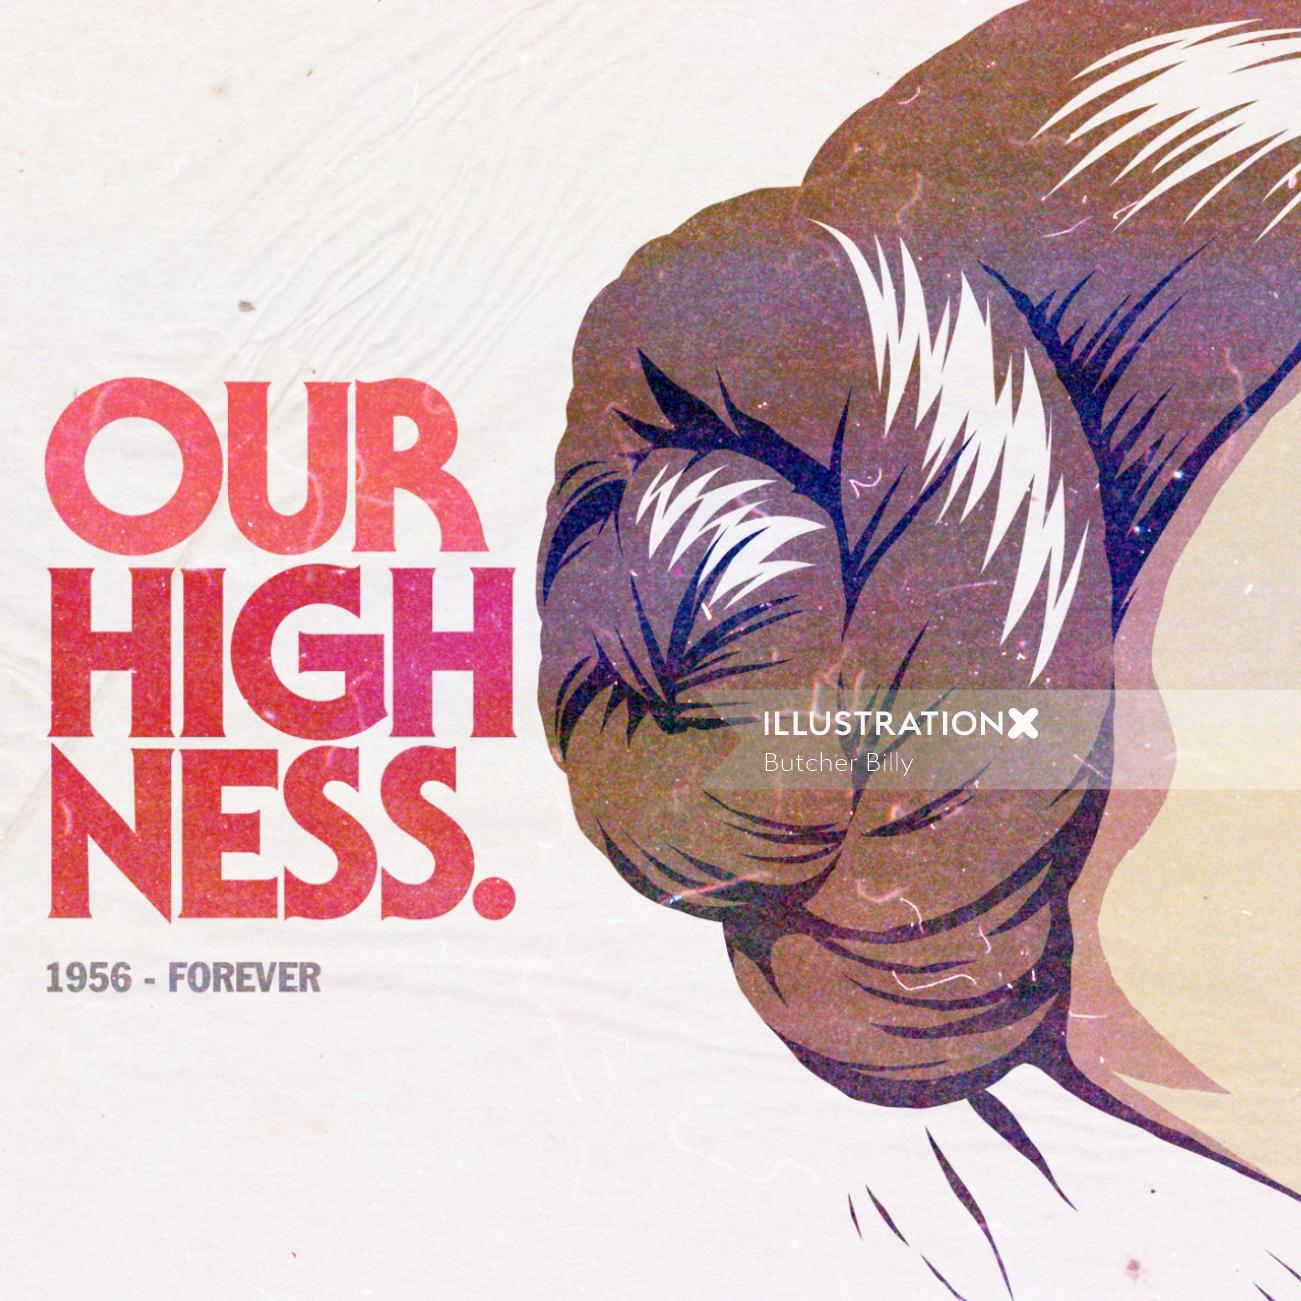 Lettering art of our highness